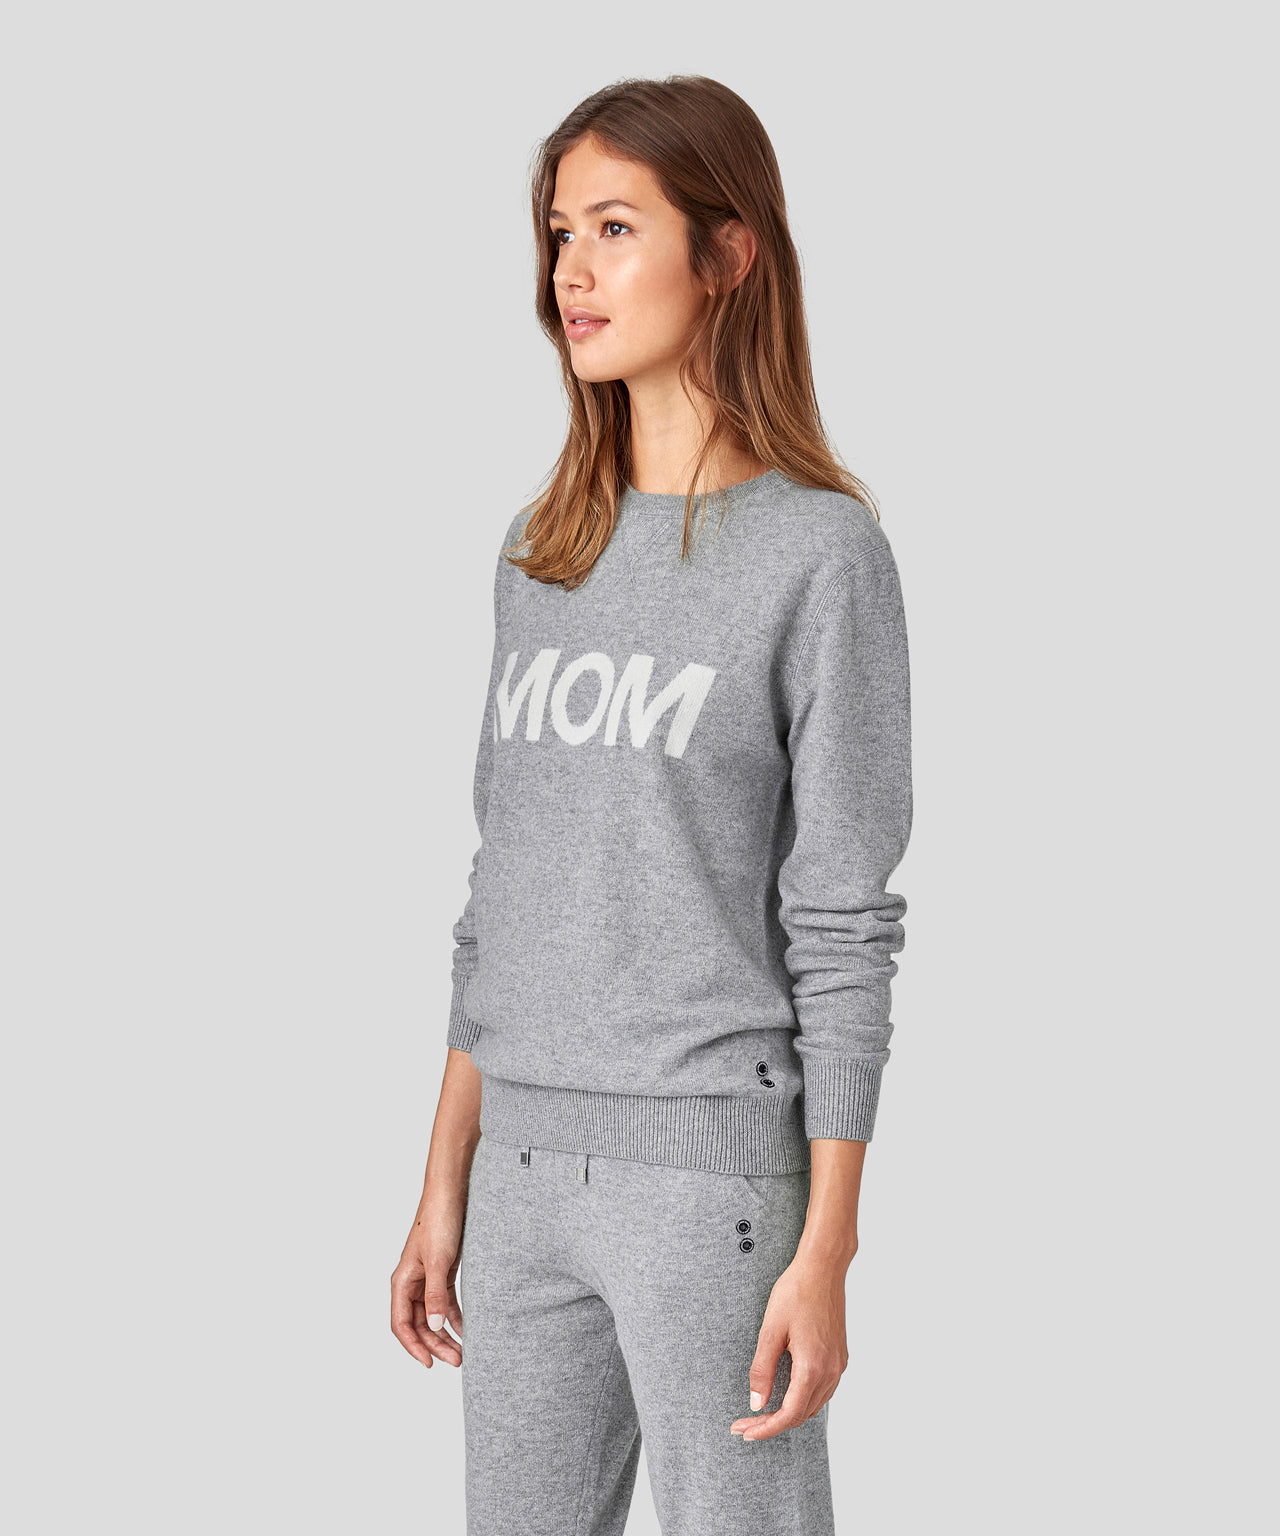 Cashmere Sweatshirt MOM - grey melange